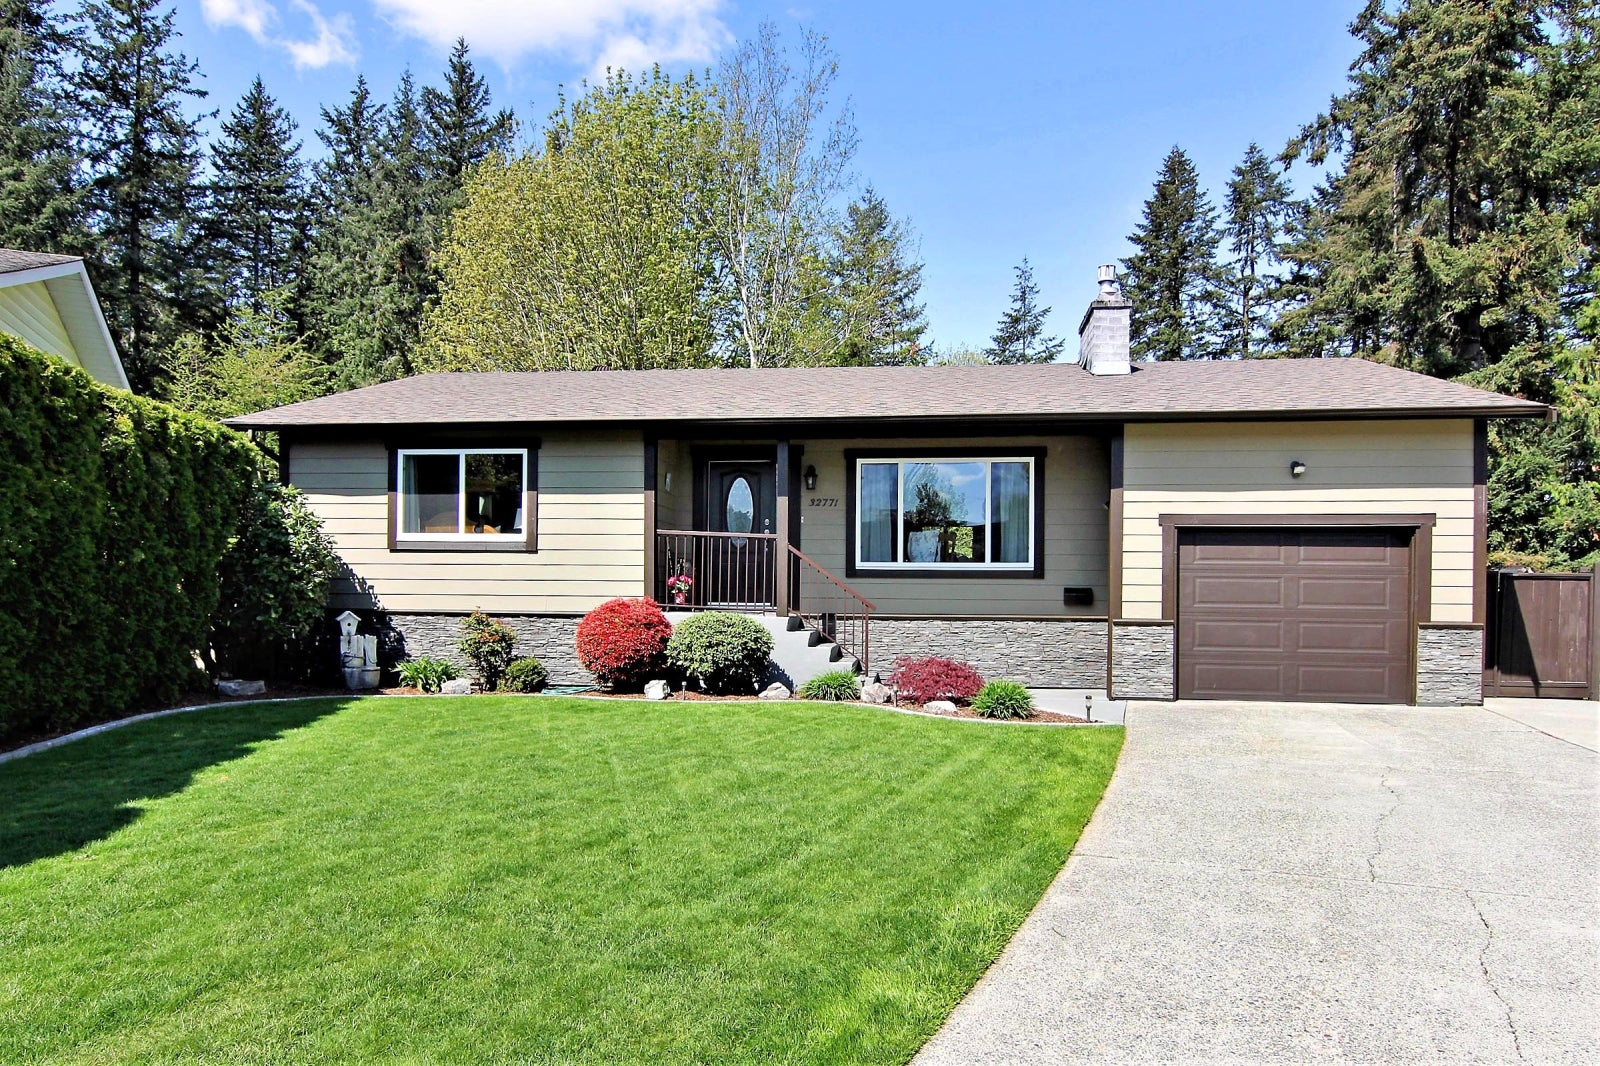 32771 COWICHAN TERRACE - Abbotsford West House/Single Family for sale, 5 Bedrooms (R2361624) #1